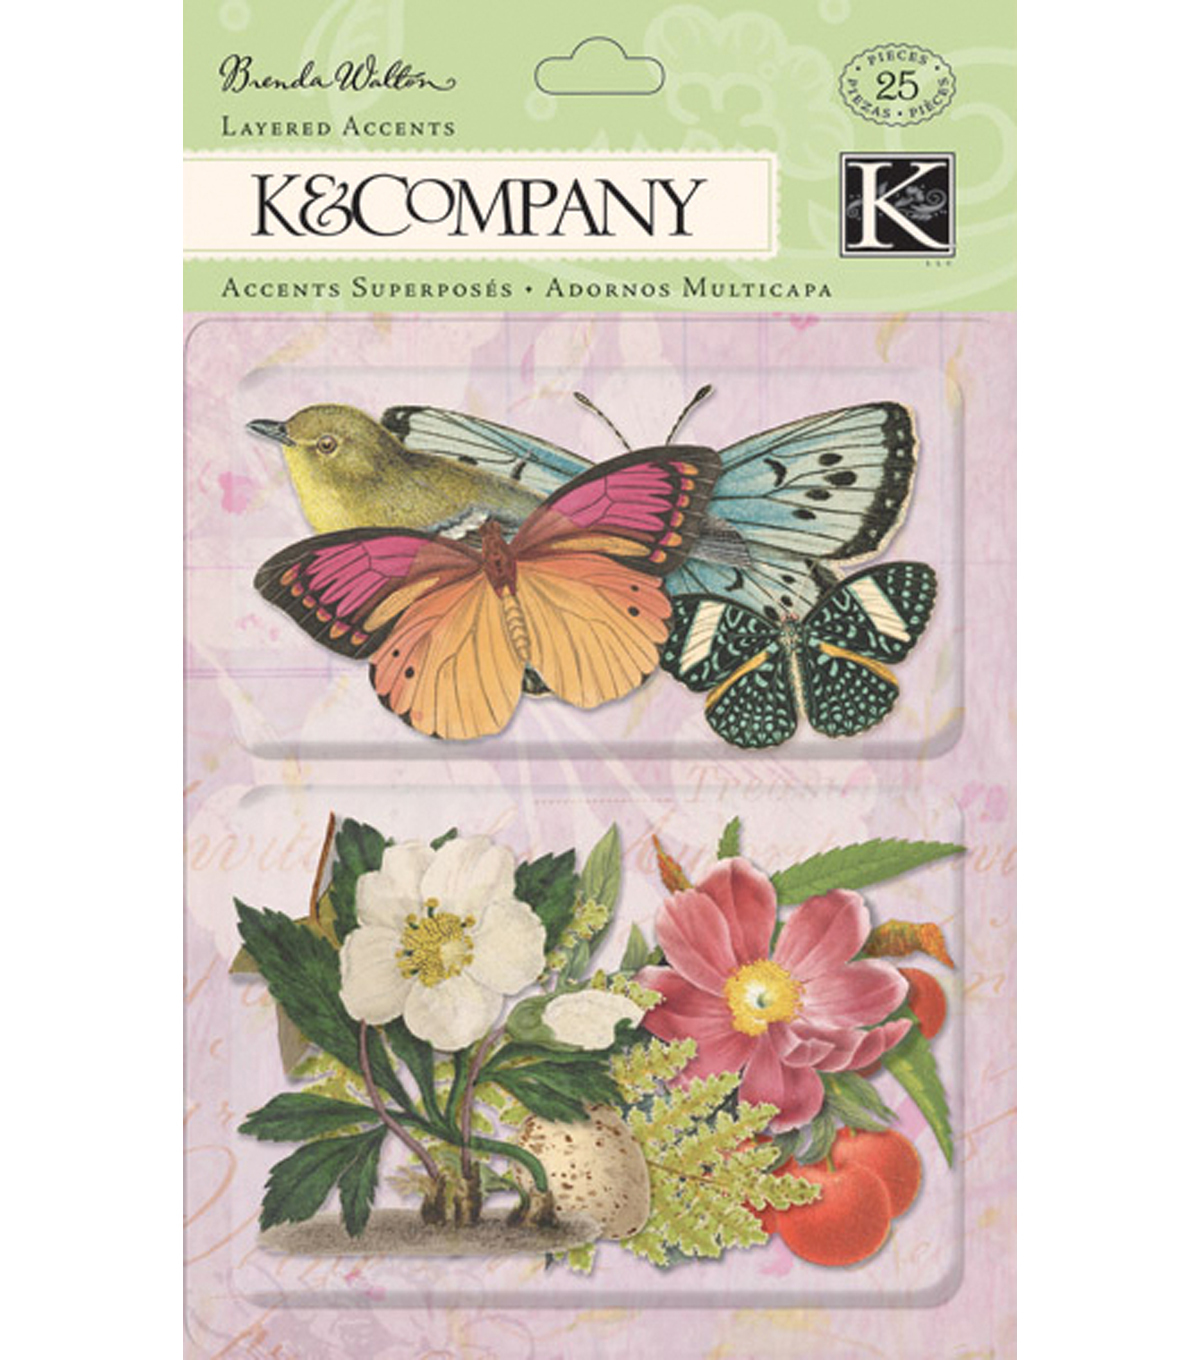 K&Company Flora & Fauna Layered Accents Stickers-Botanical Butterfly